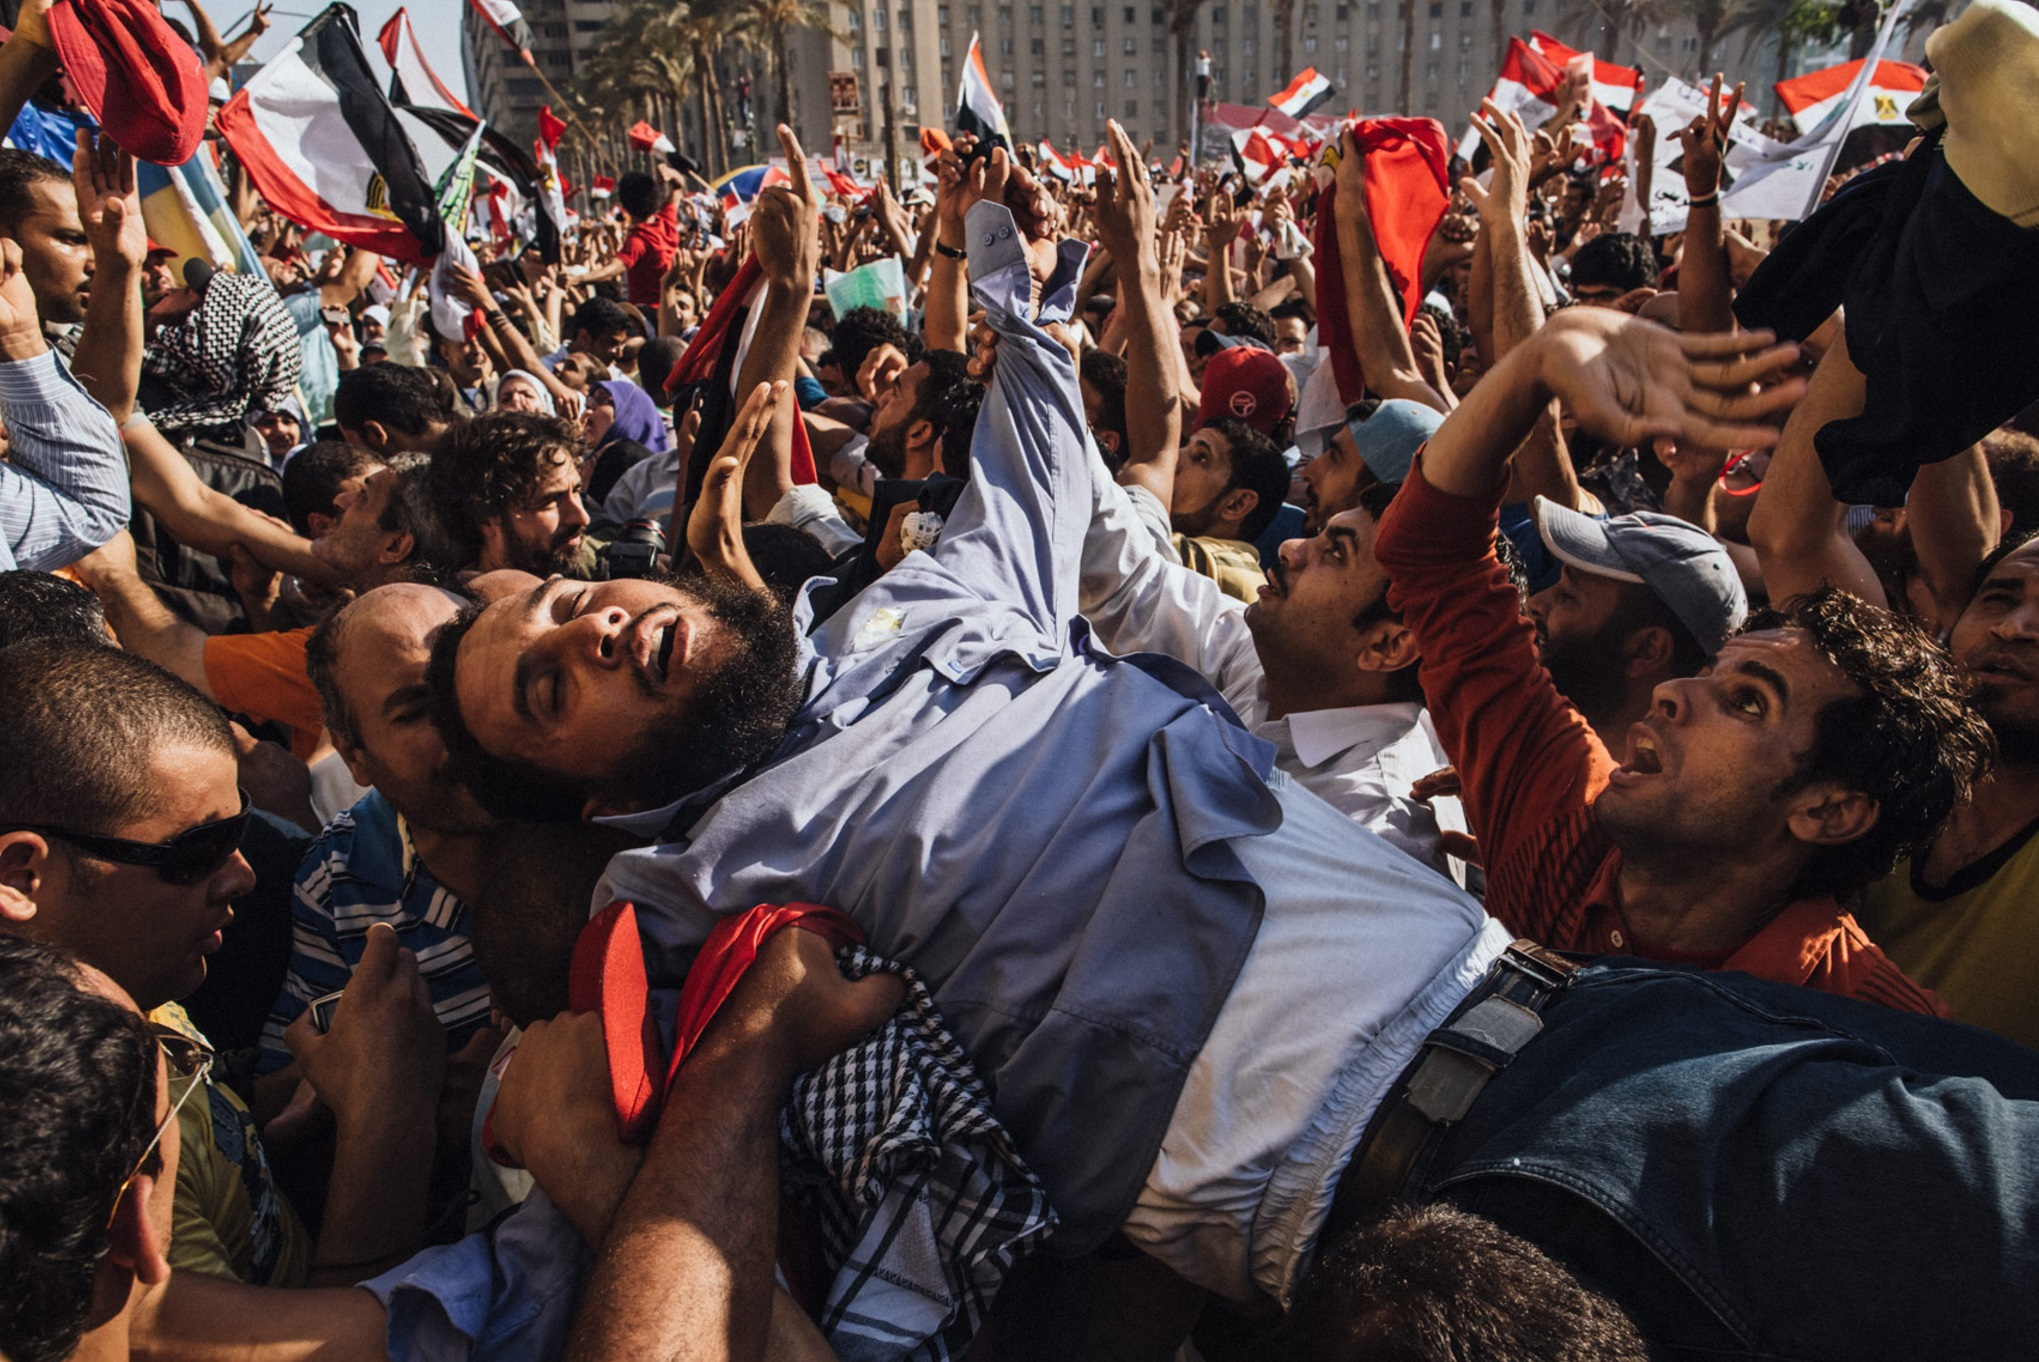 A supporter of the Muslim Brotherhood overcome by emotion is carried onto the stage as Egyptians celebrate the election of their new president Mohamed Morsi in Tahrir Square in Cairo, Egypt. June 24, 2012  © Daniel Berehulak/Getty Images